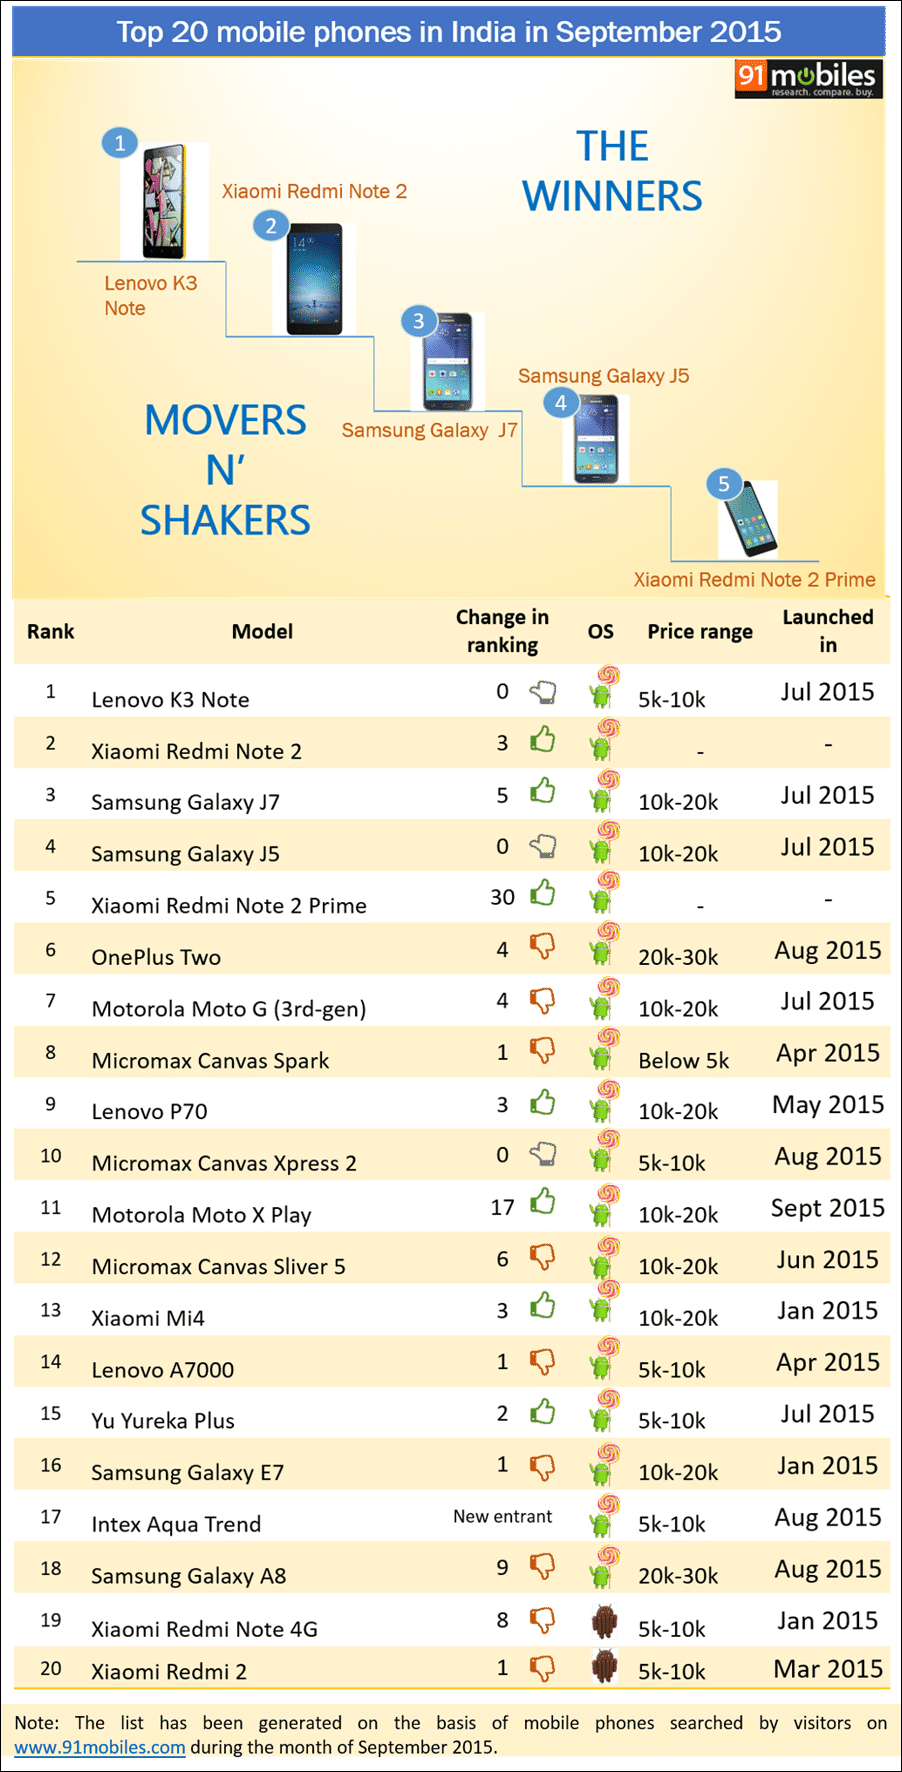 Top 20 mobile phones in India in September 2015